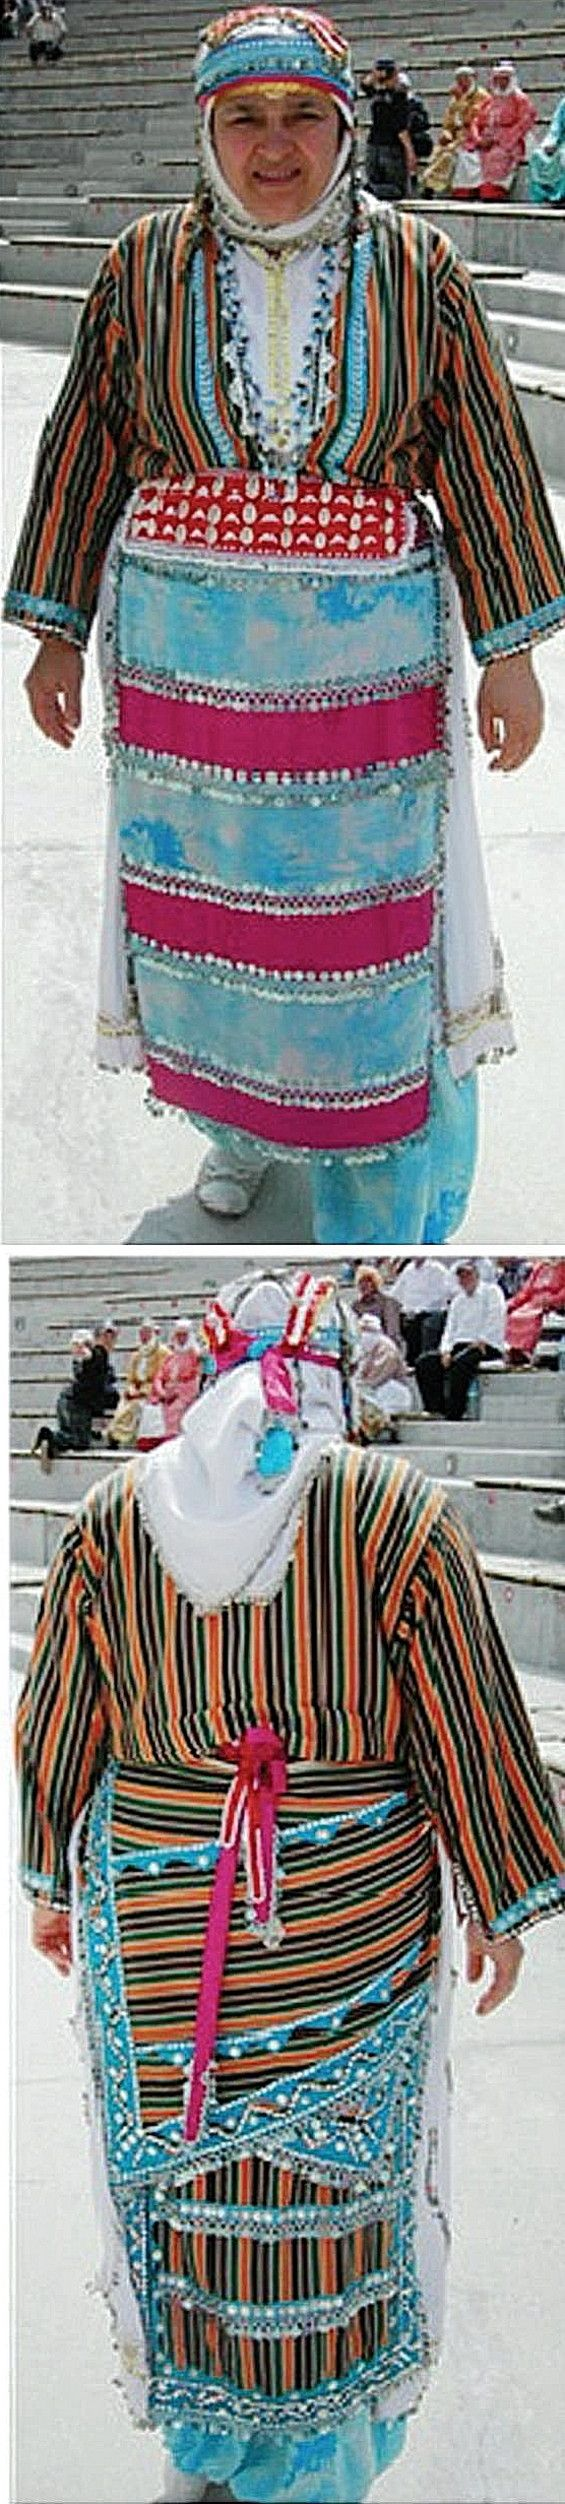 A traditional festive costume from the village of Kozluören (in the Soma district, in the North of the Manisa province).  Ethnic group: Tahtacı, Alevi Türkmen.  Recent pictures, 2014.